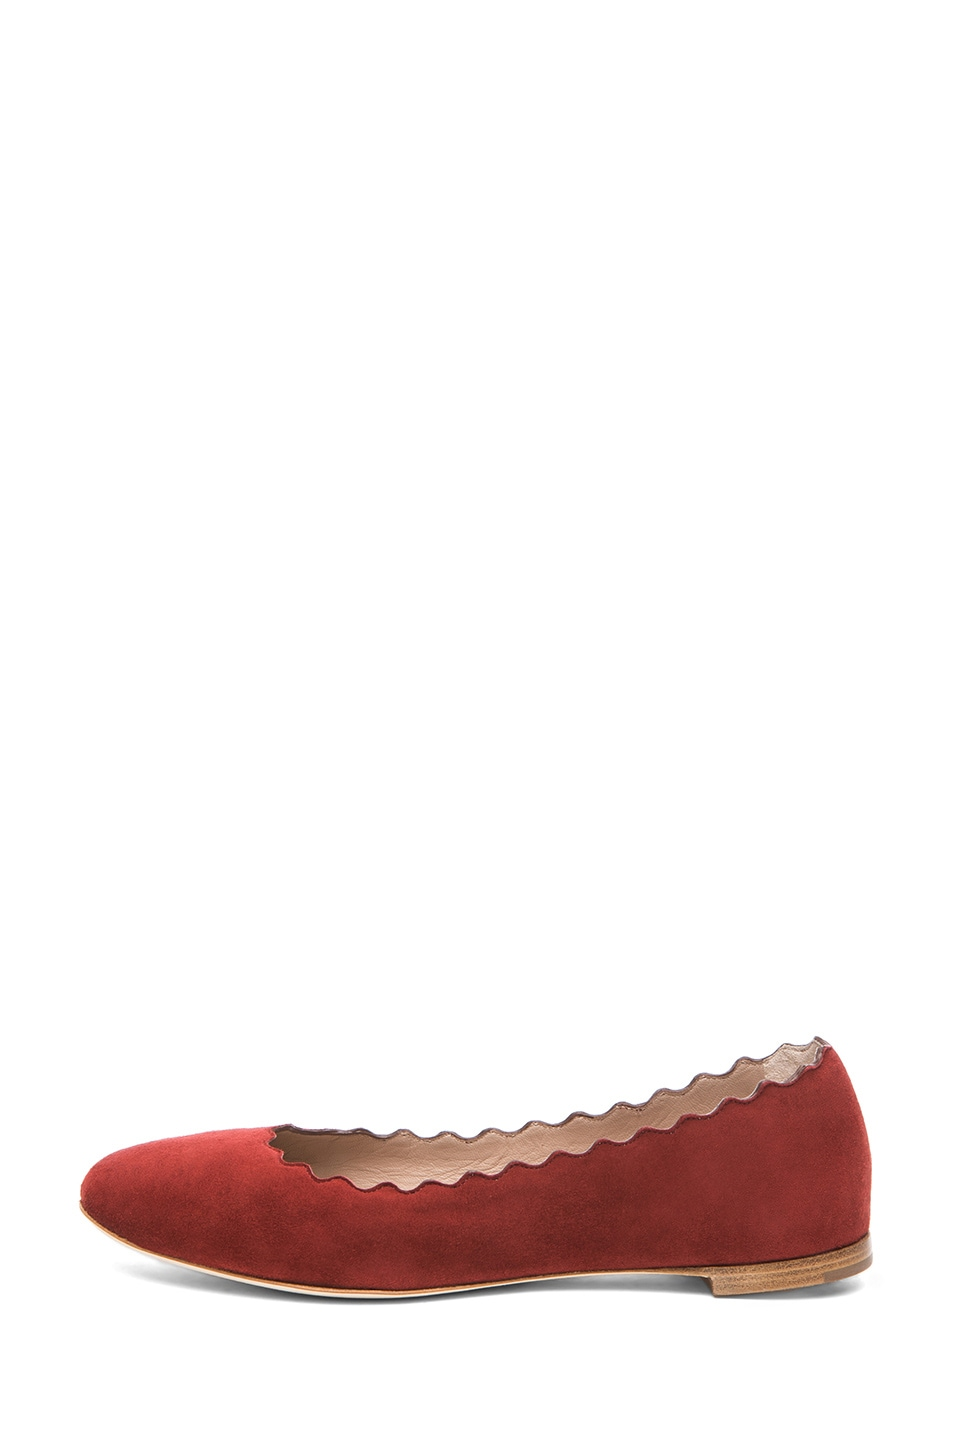 Image 1 of Chloe Suede Scalloped Flats in Red Moroccan Ochre